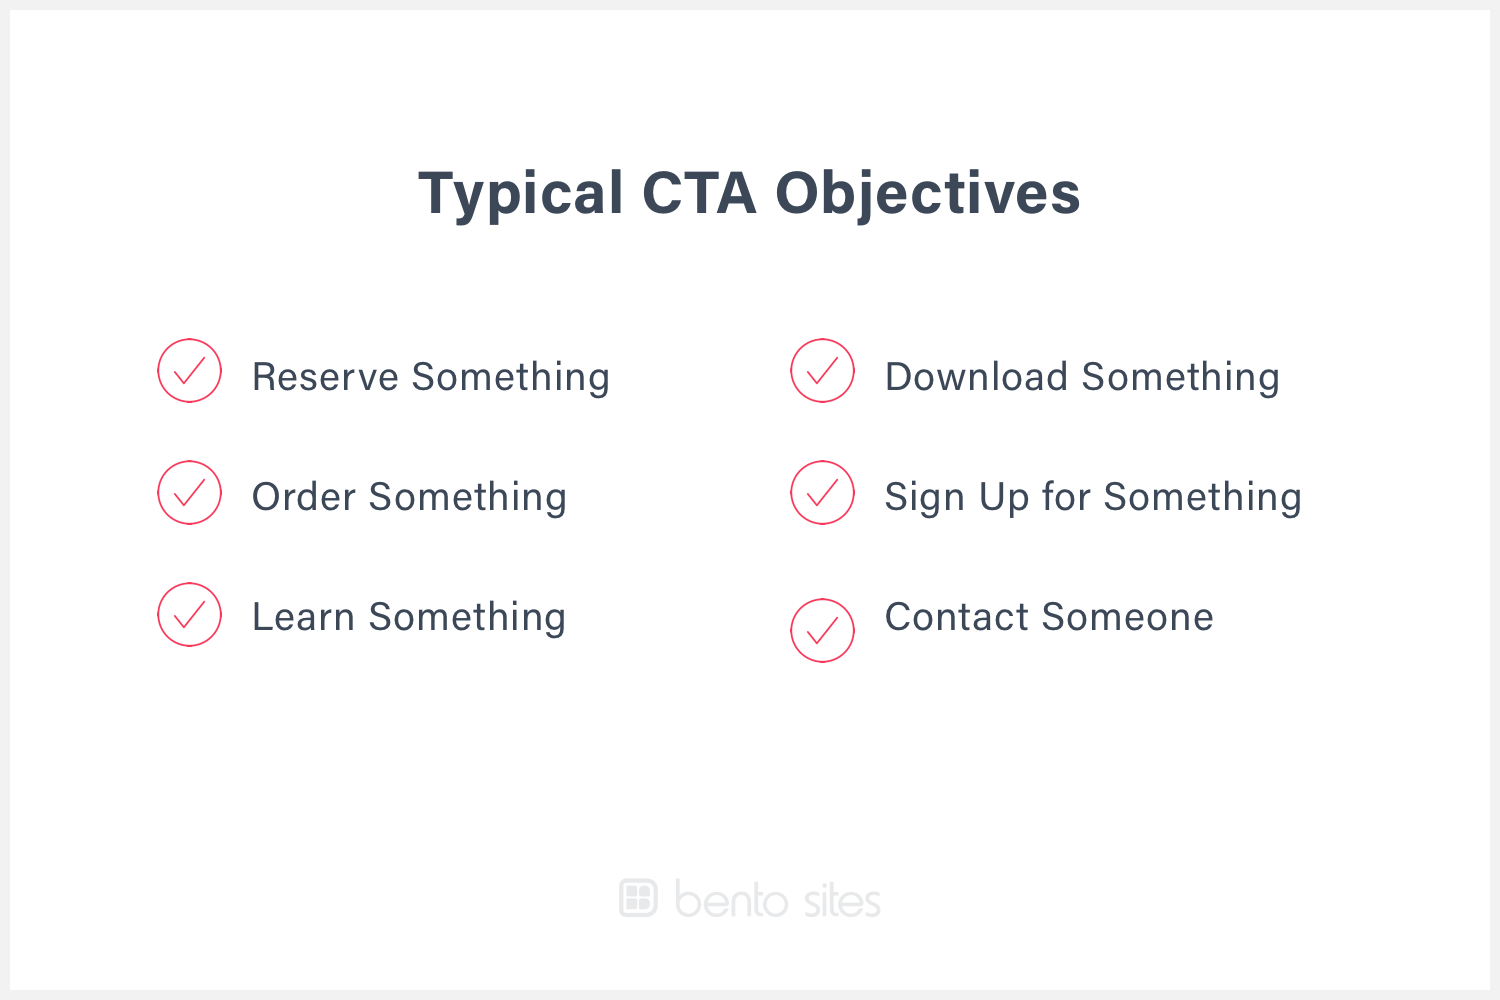 List of typical call to action objectives